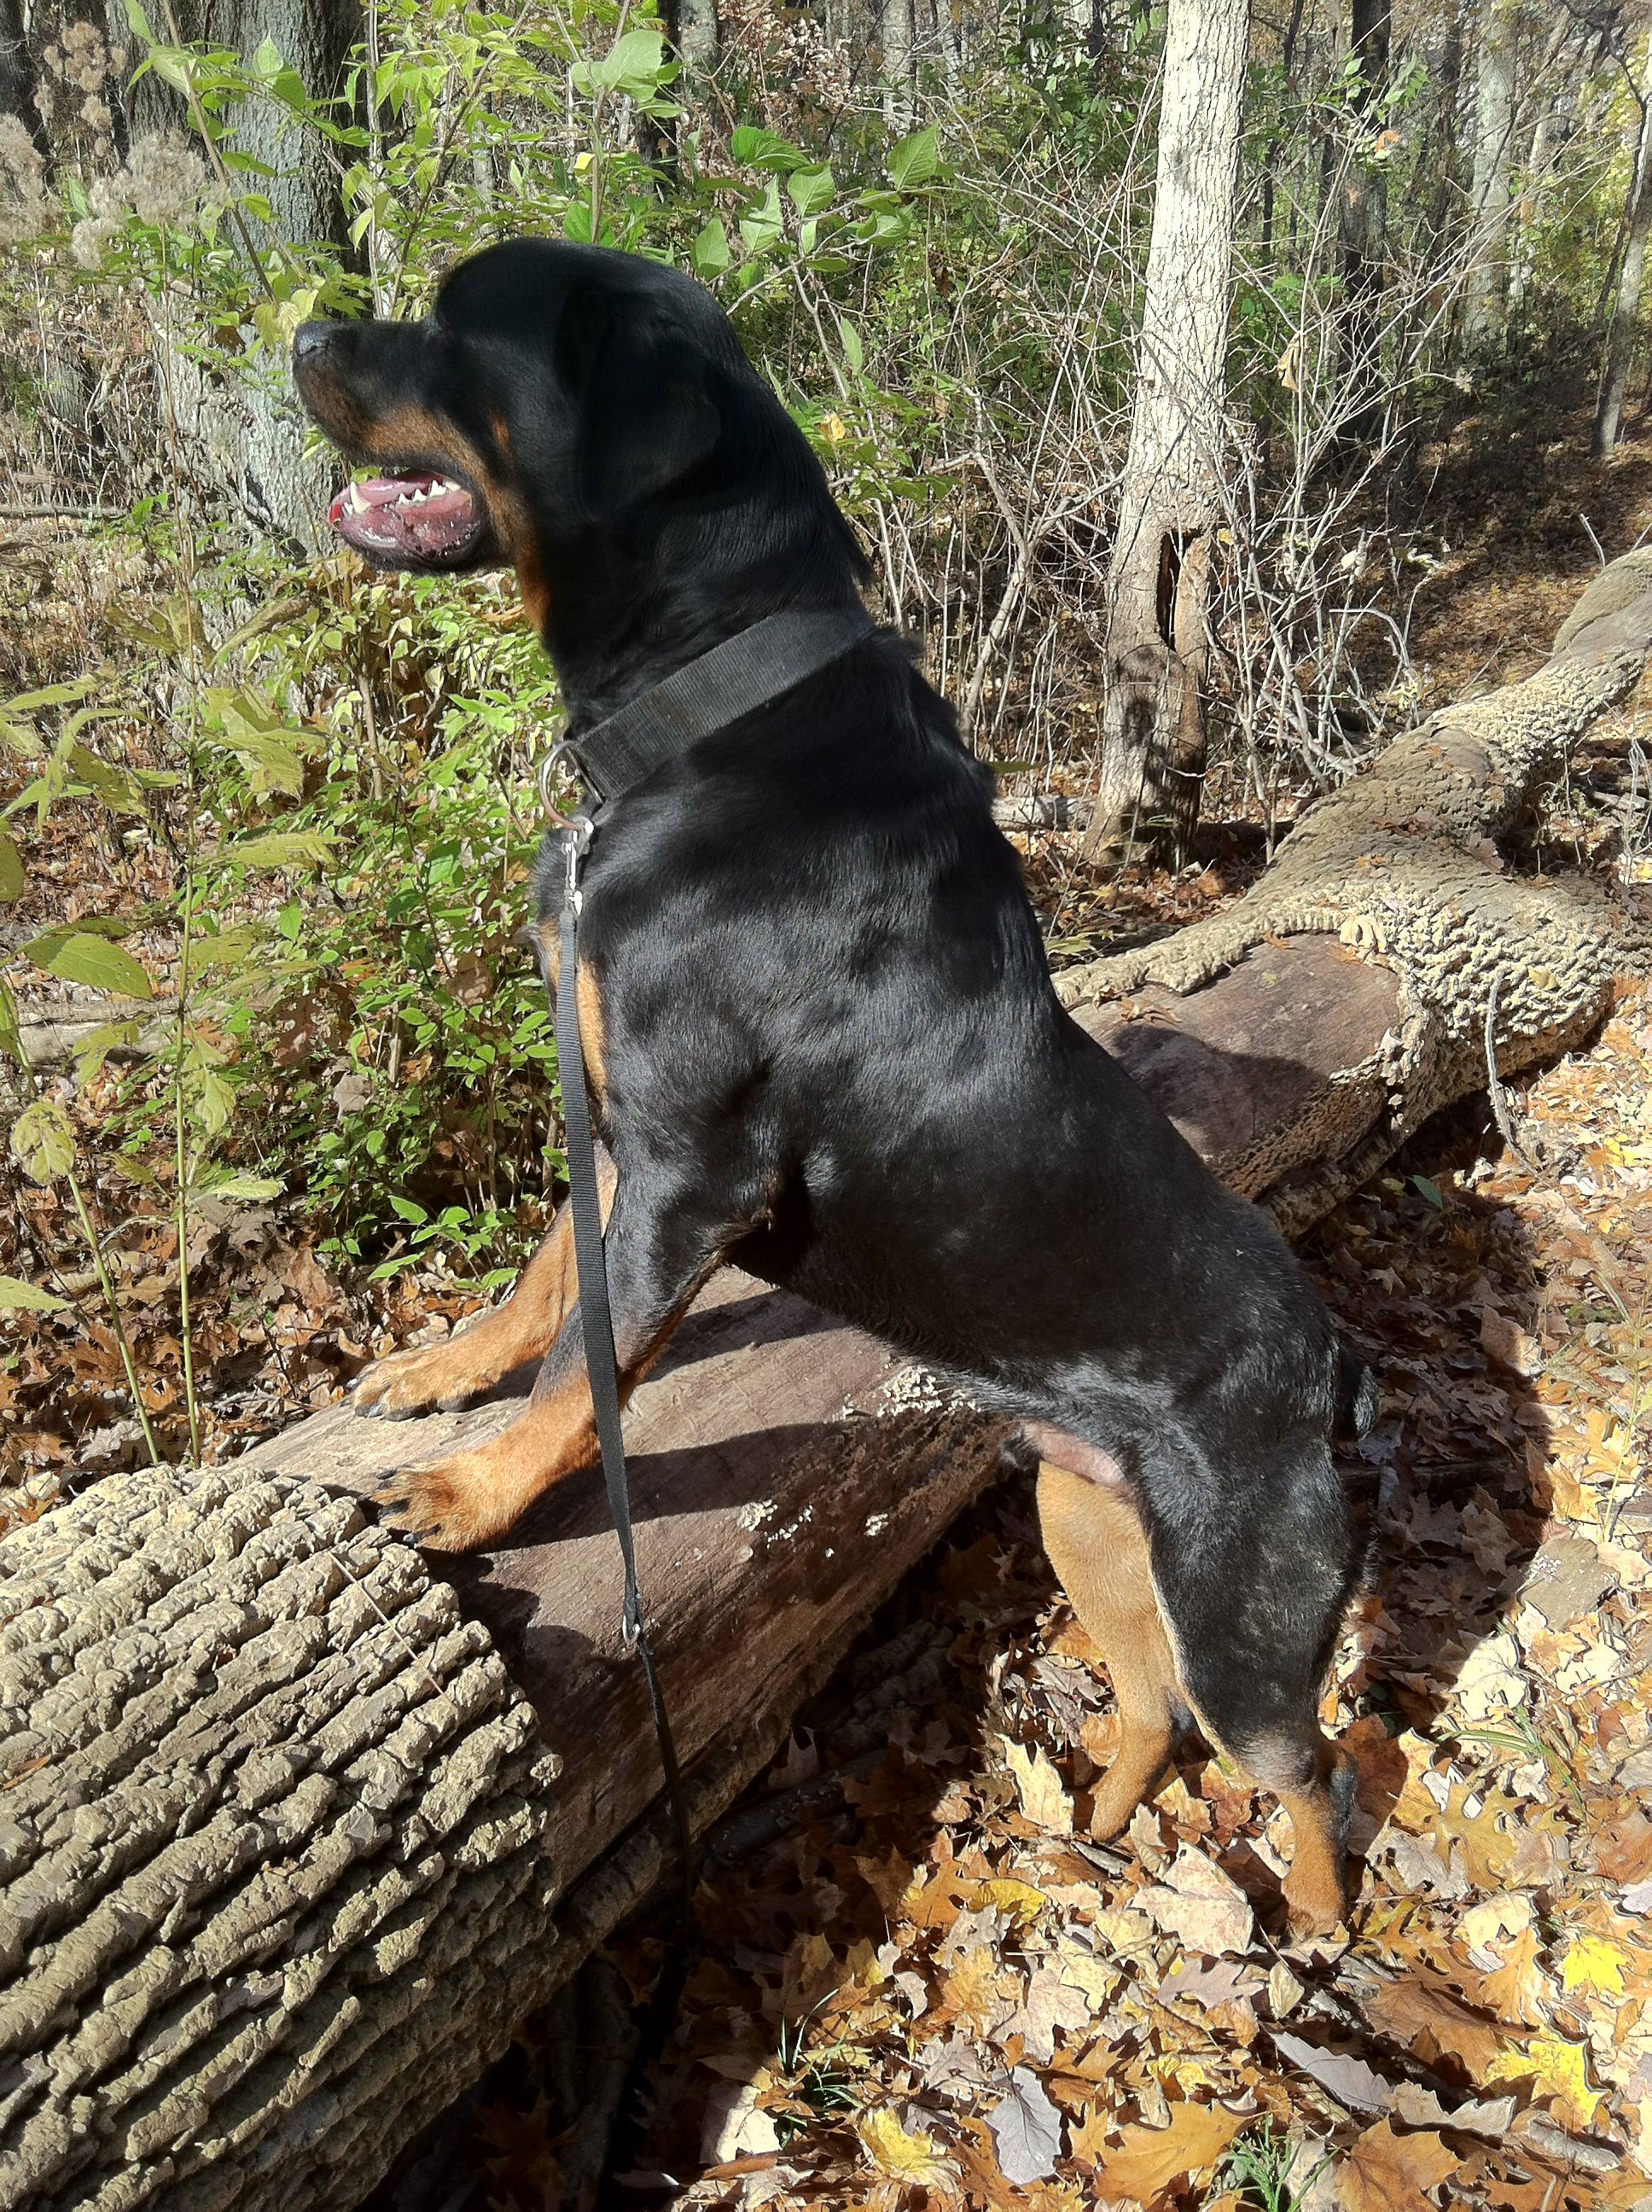 Pin By Ajl0004 On Rottweiler Rottweiler Dogs Dog Life